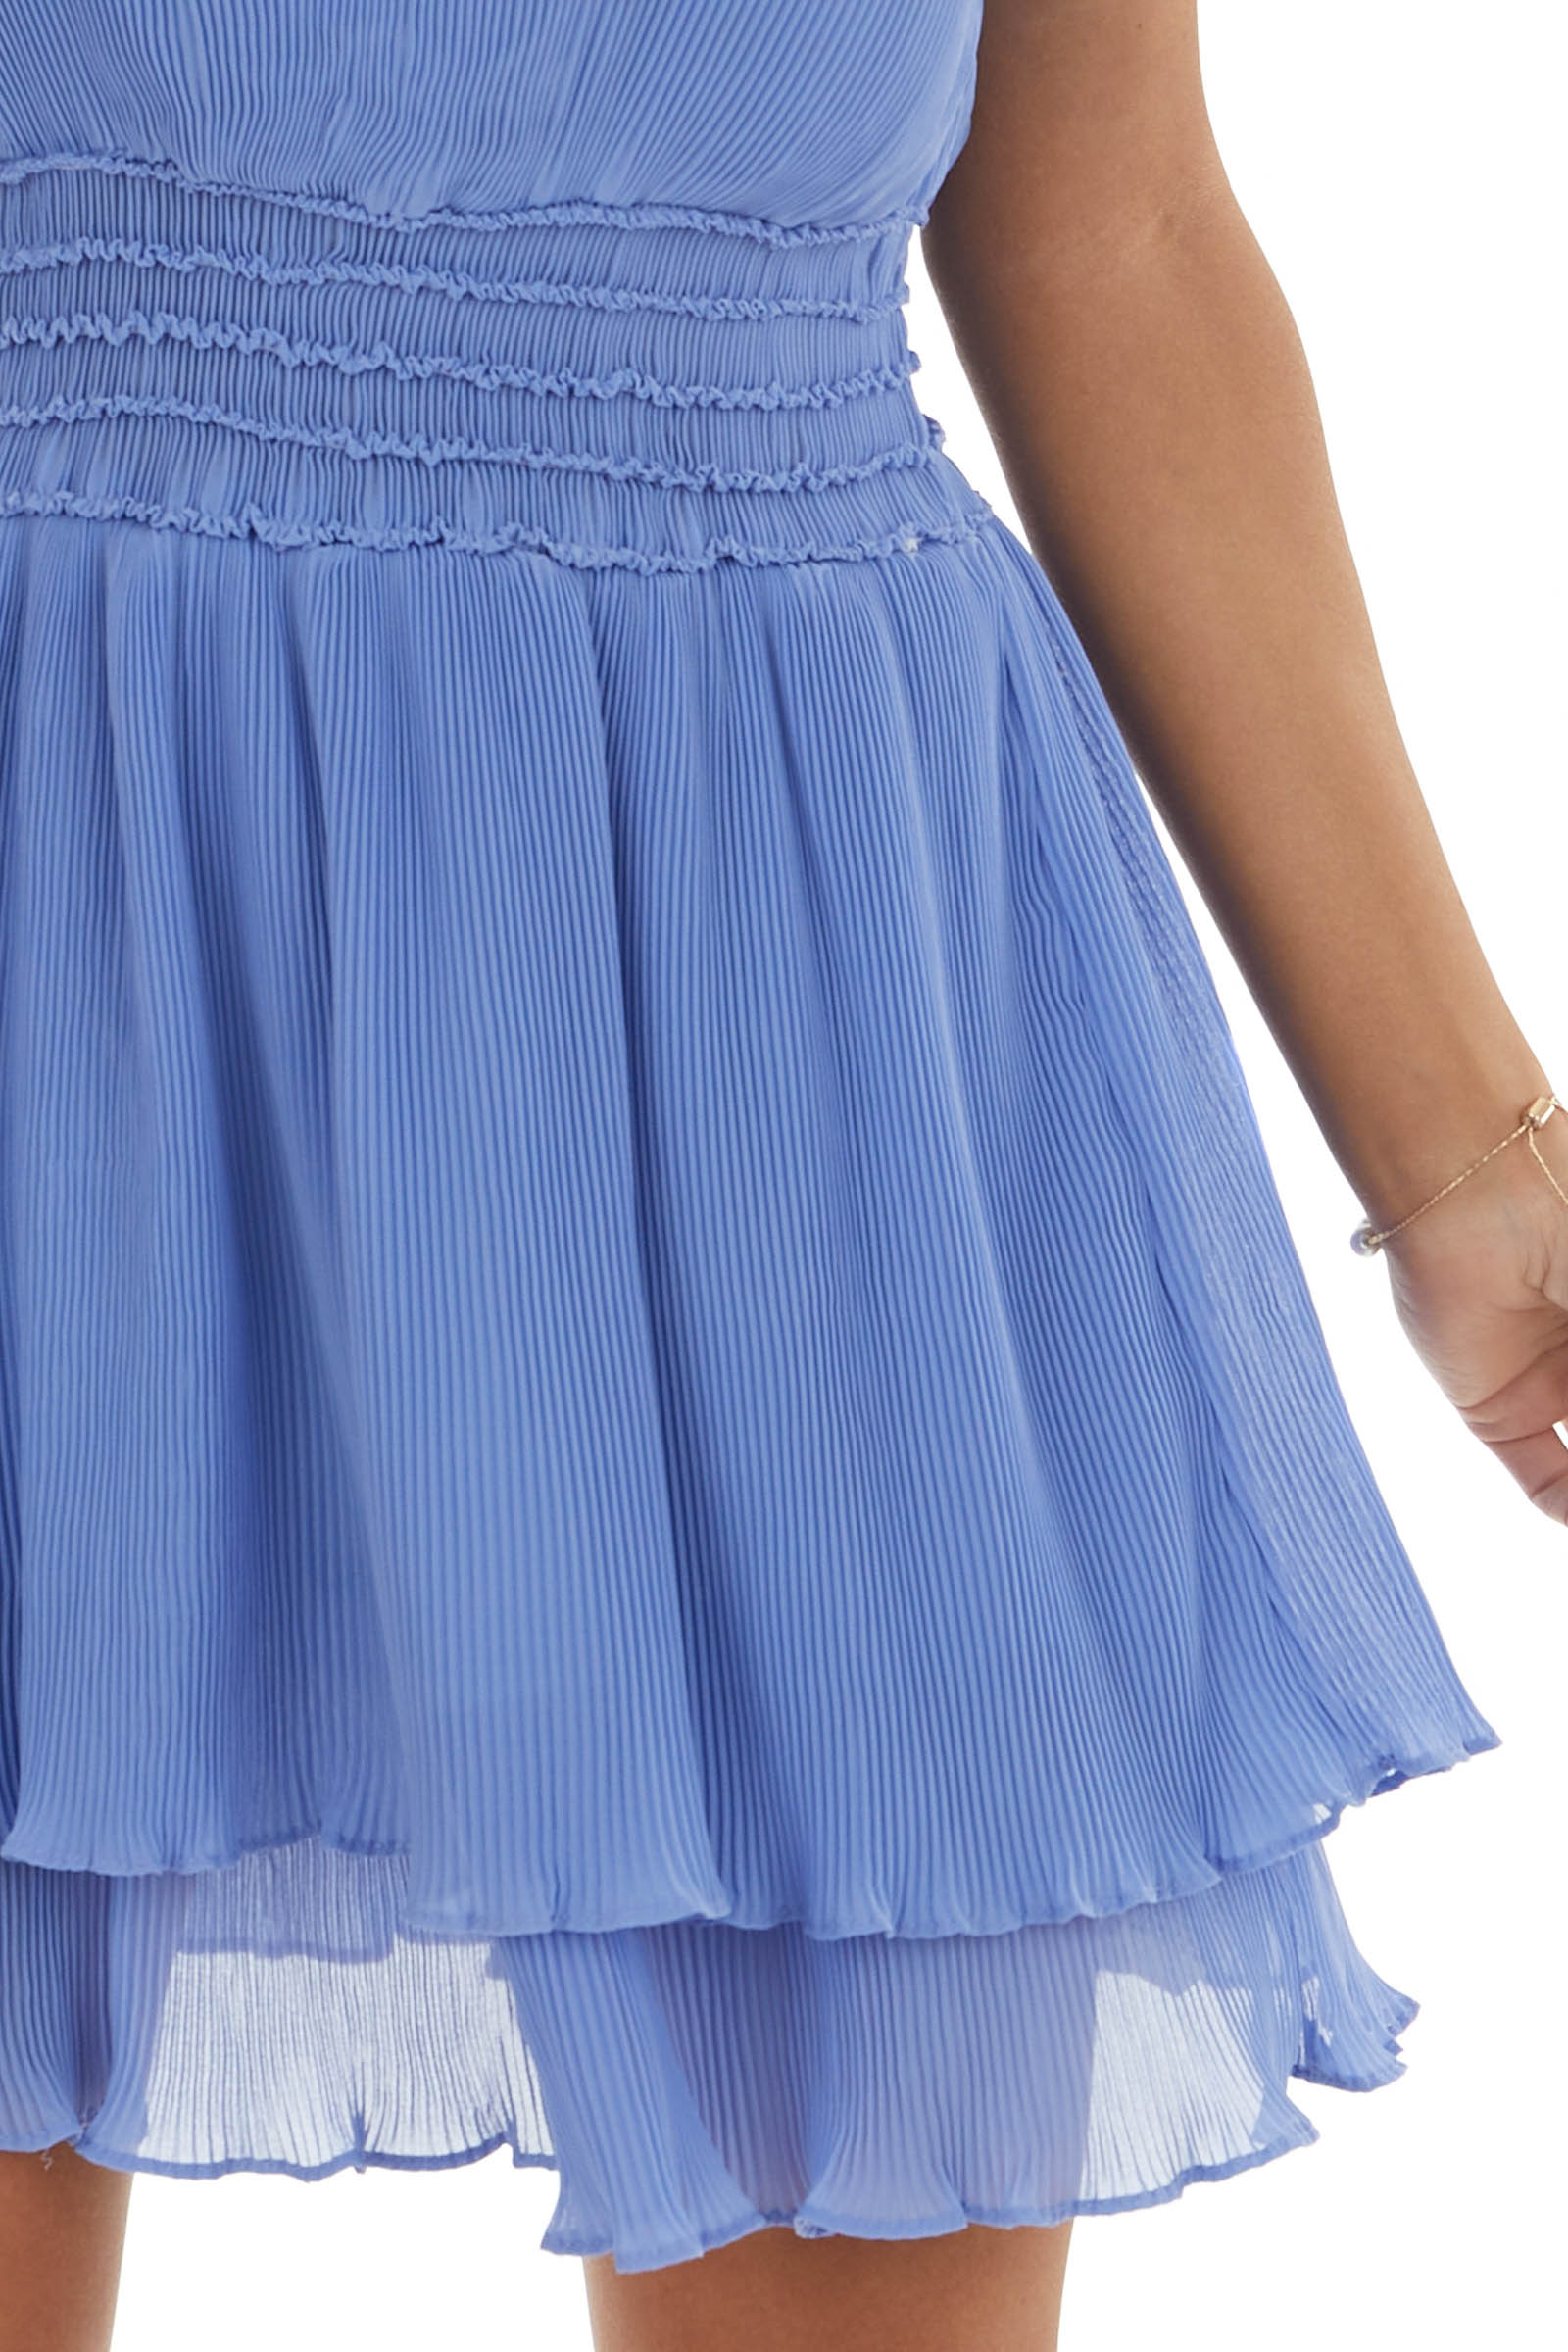 Periwinkle Pleated Short Knit Dress with Smocked Waistline